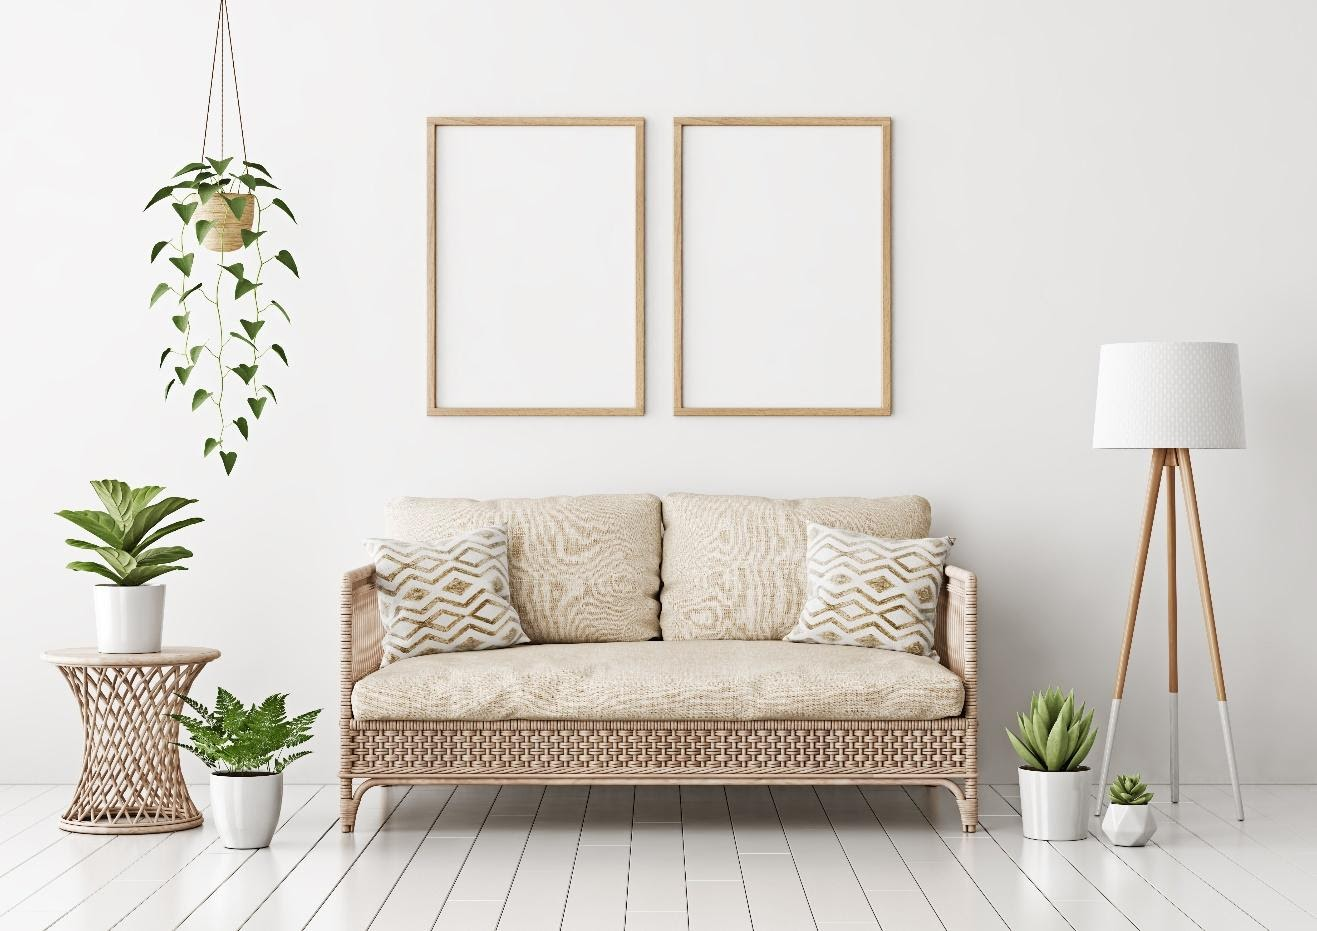 Home Design Trends for 2020 - Inspire Buddy